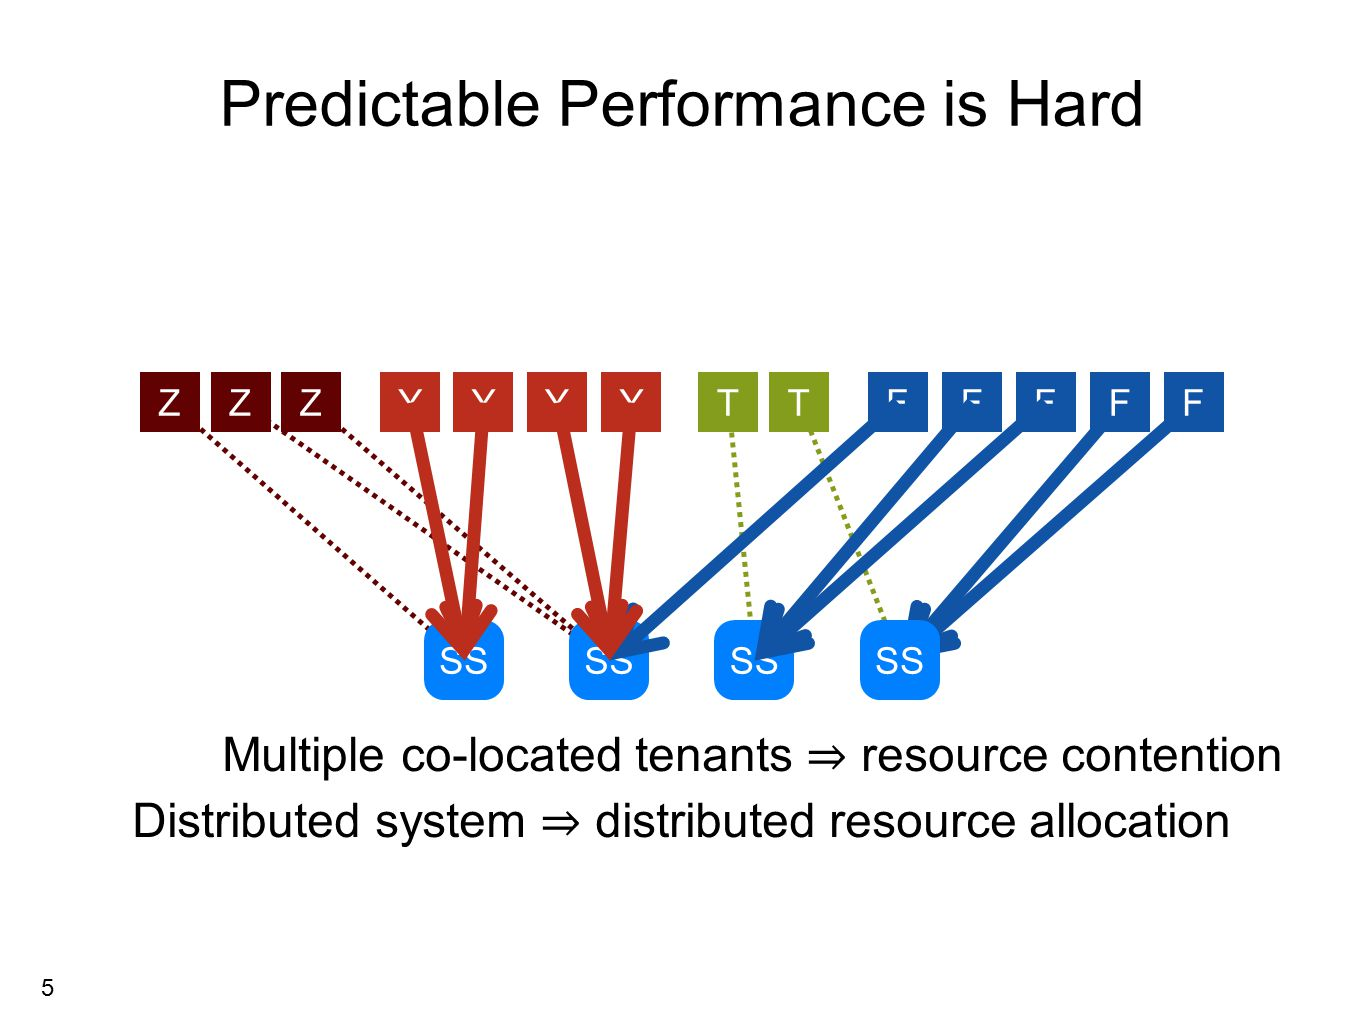 5 Distributed system ⇒ distributed resource allocation Multiple co-located tenants ⇒ resource contention ZYTFZYFTYYZFFF SS Predictable Performance is